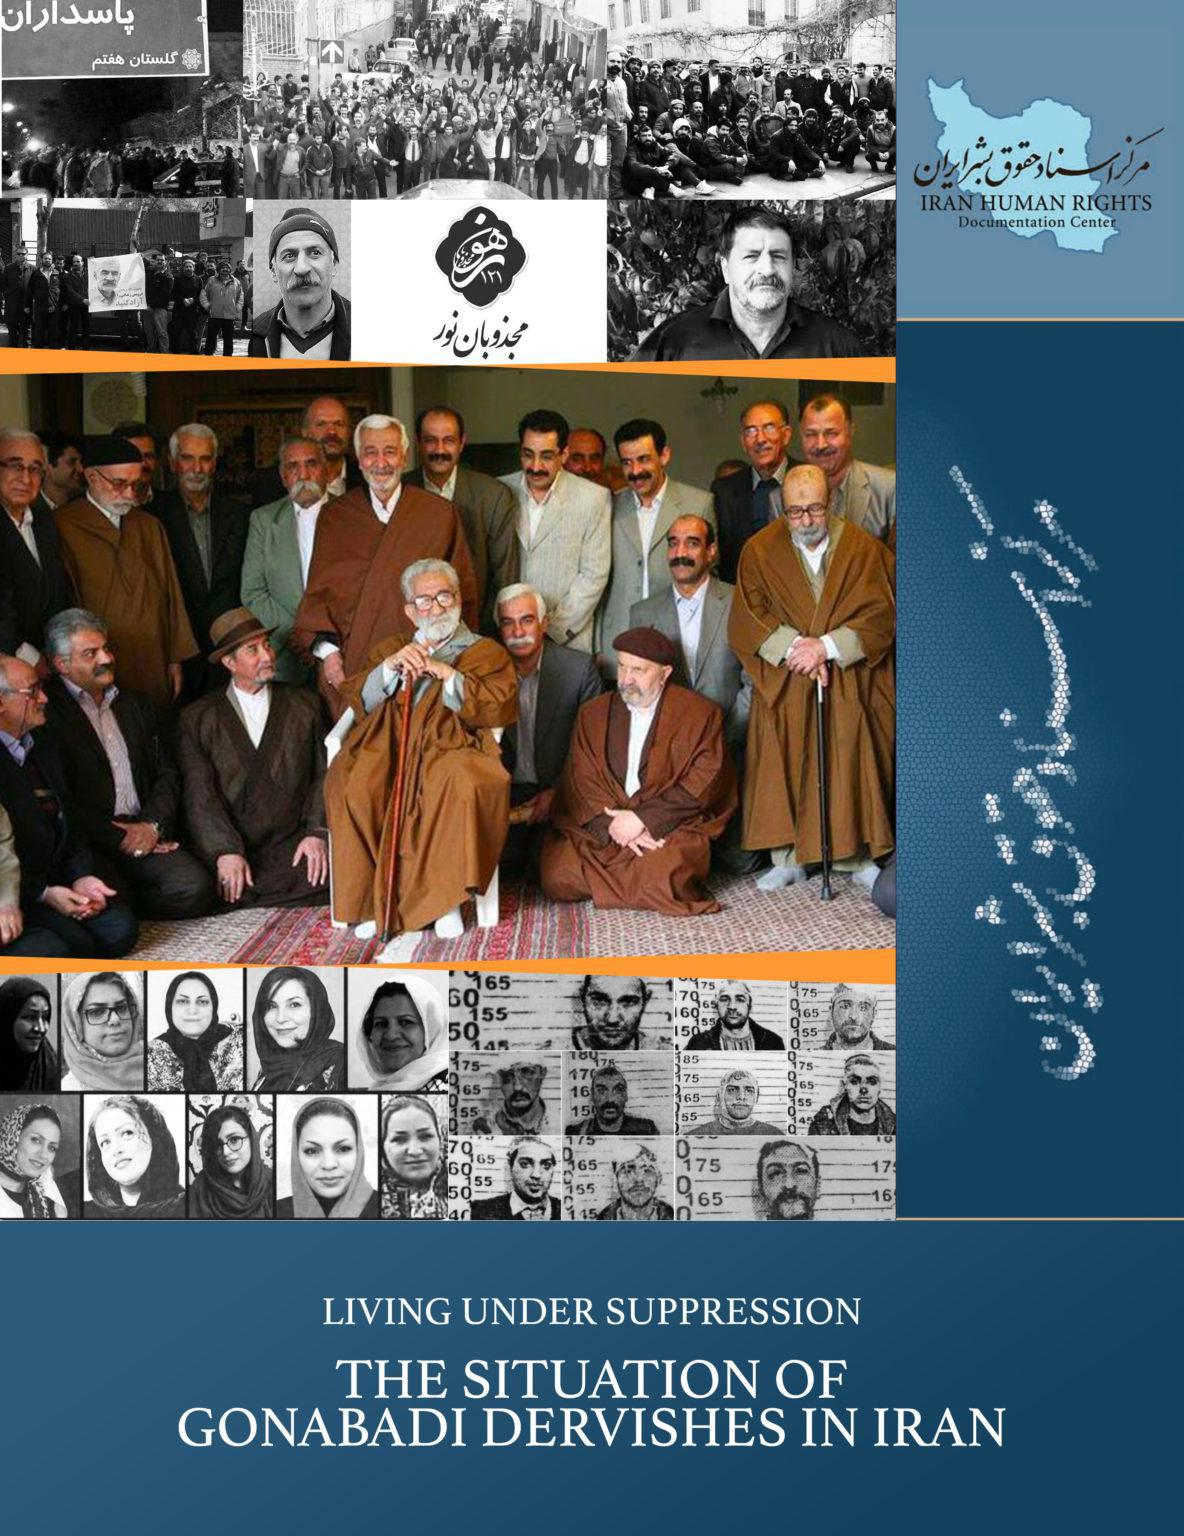 ifmat - Living in the Shadows of Oppression - The Situation of Christian Converts in Iran